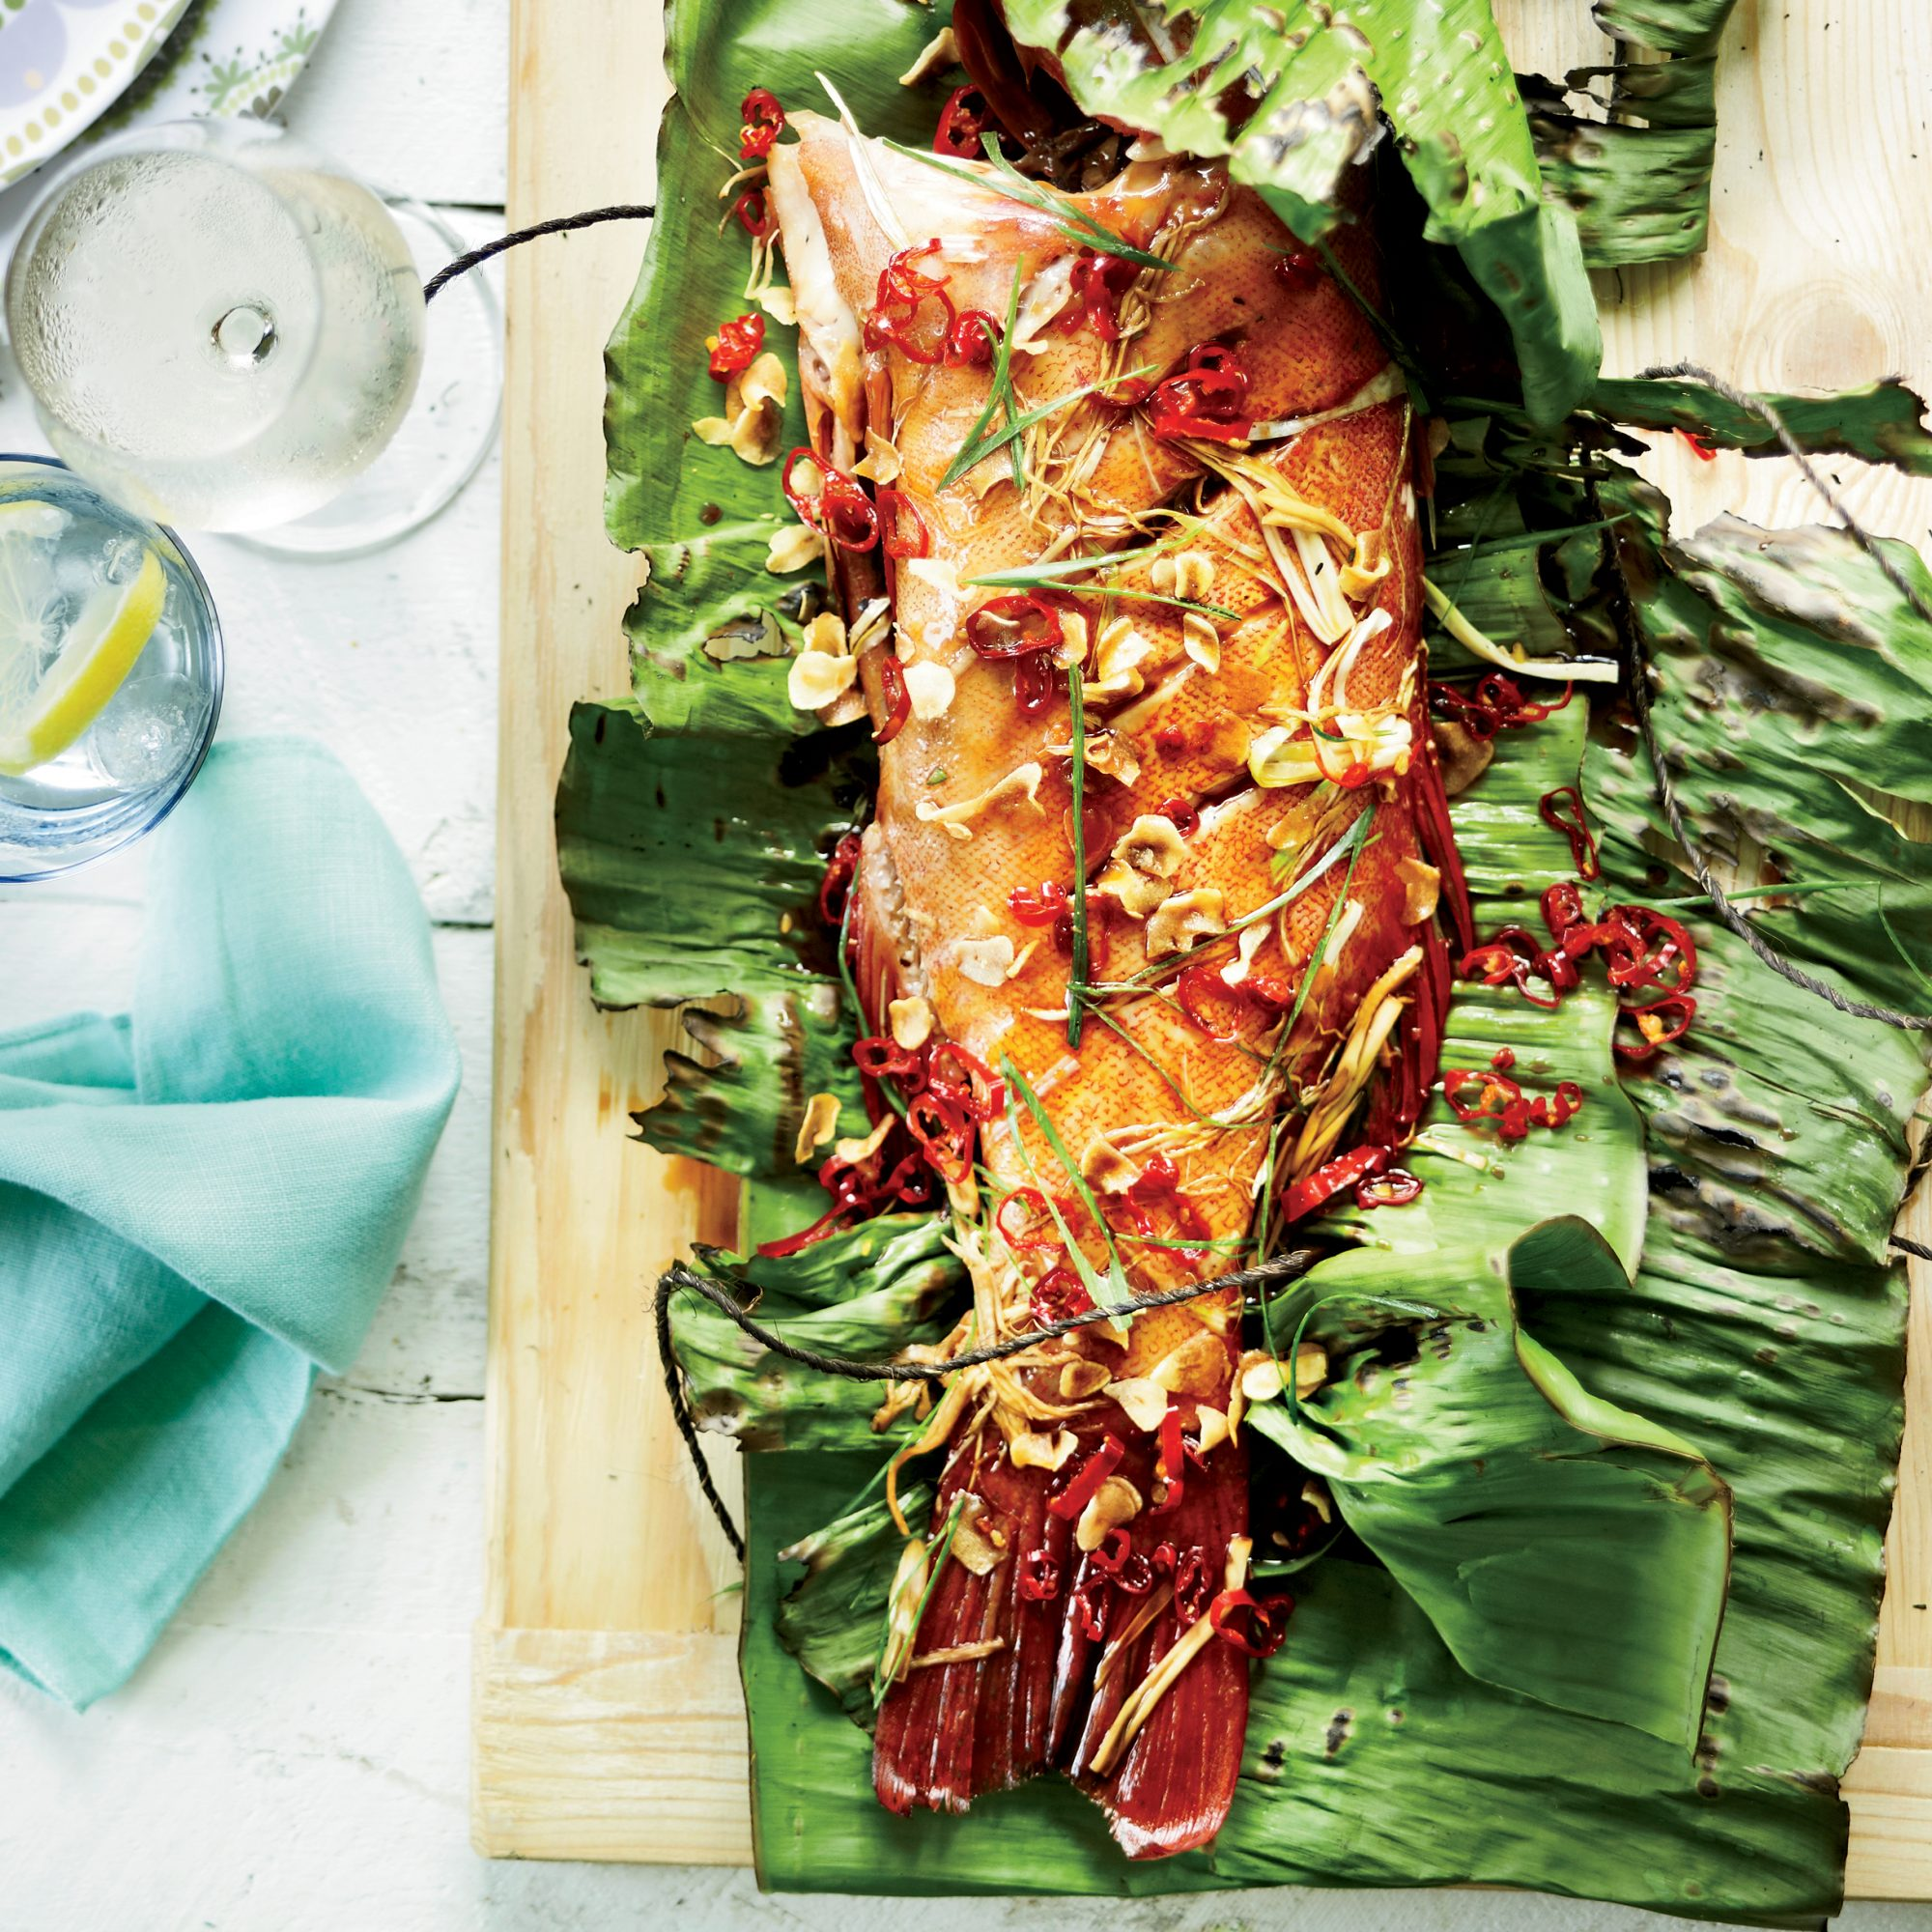 Recipes for Whole Fish